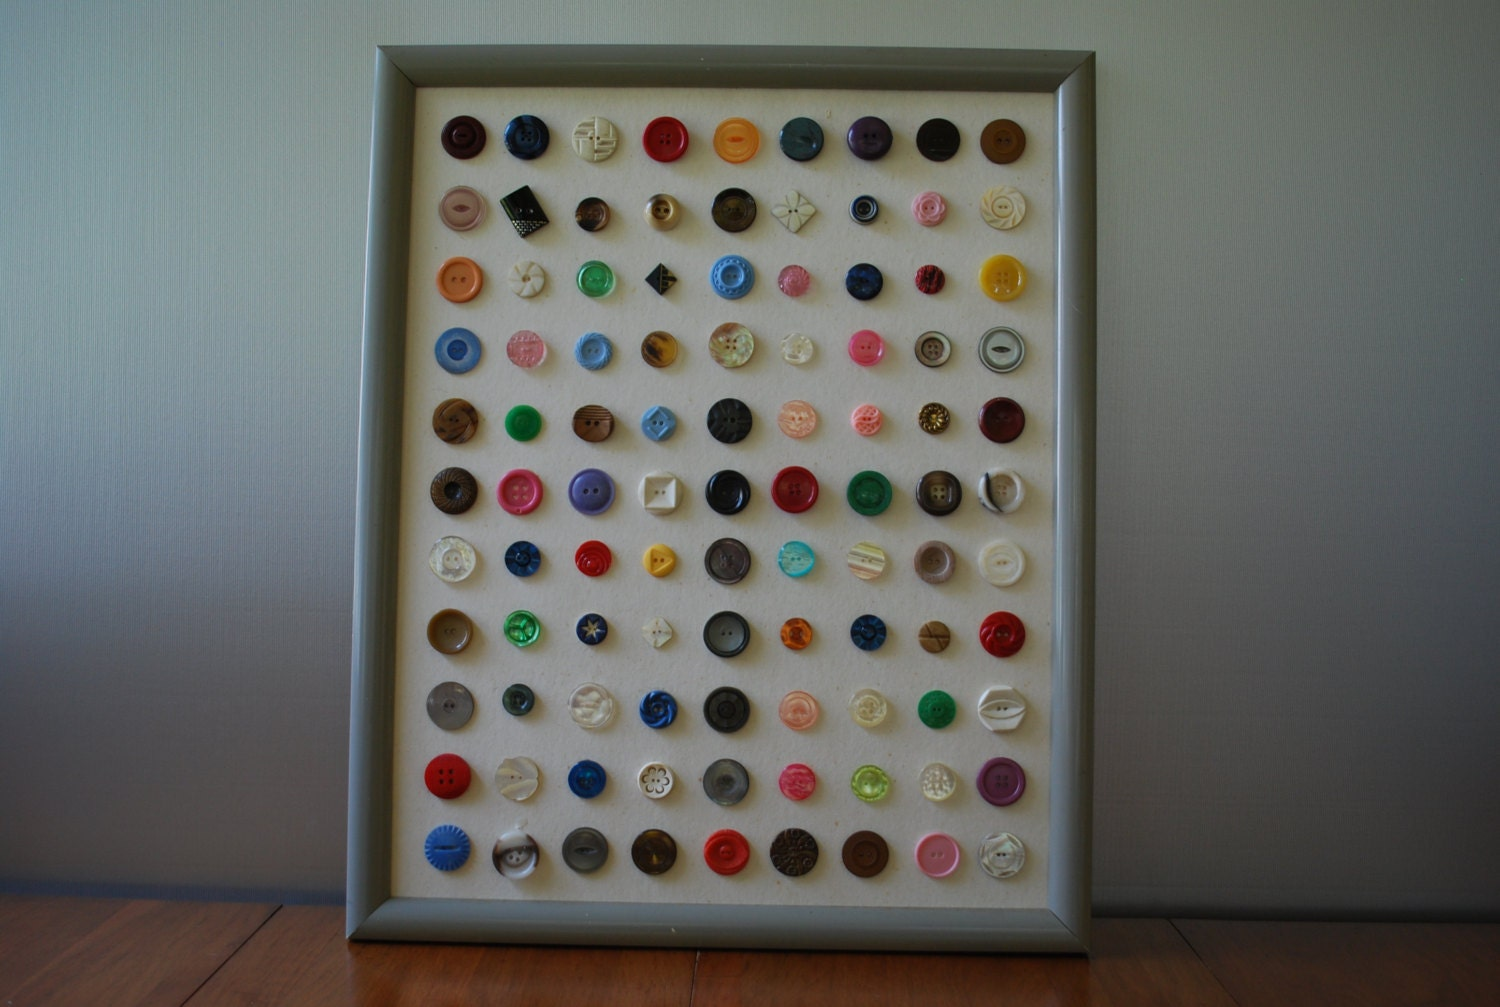 Wall Decor Craft Room : Button art vintage sewing room wall decor craft